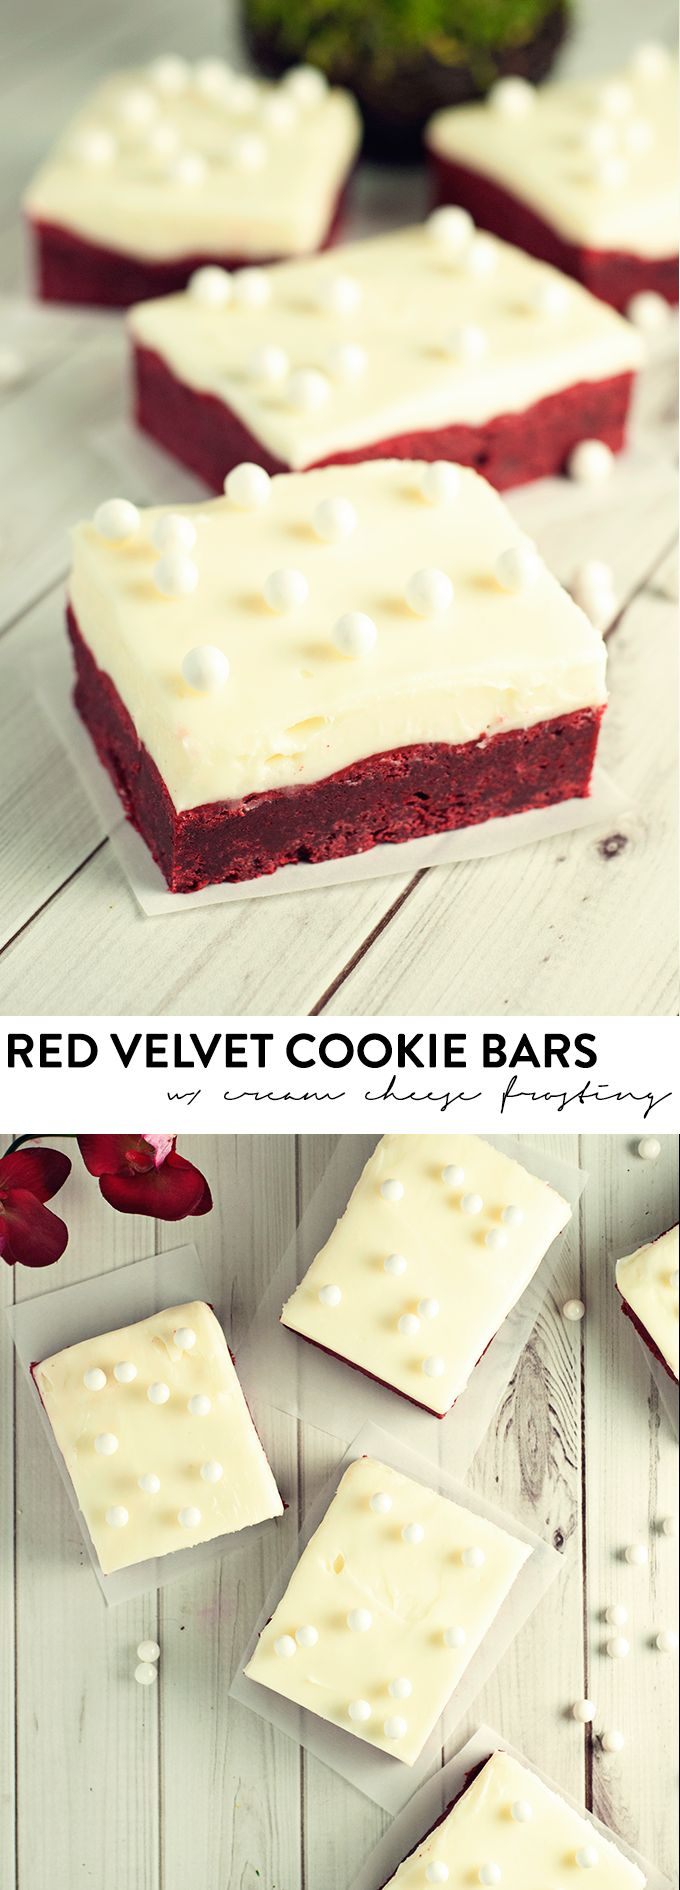 Decadent, moist, and chewy, these red velvet cookie bars with cream cheese frosting will blow your mind! asimplepantry.com